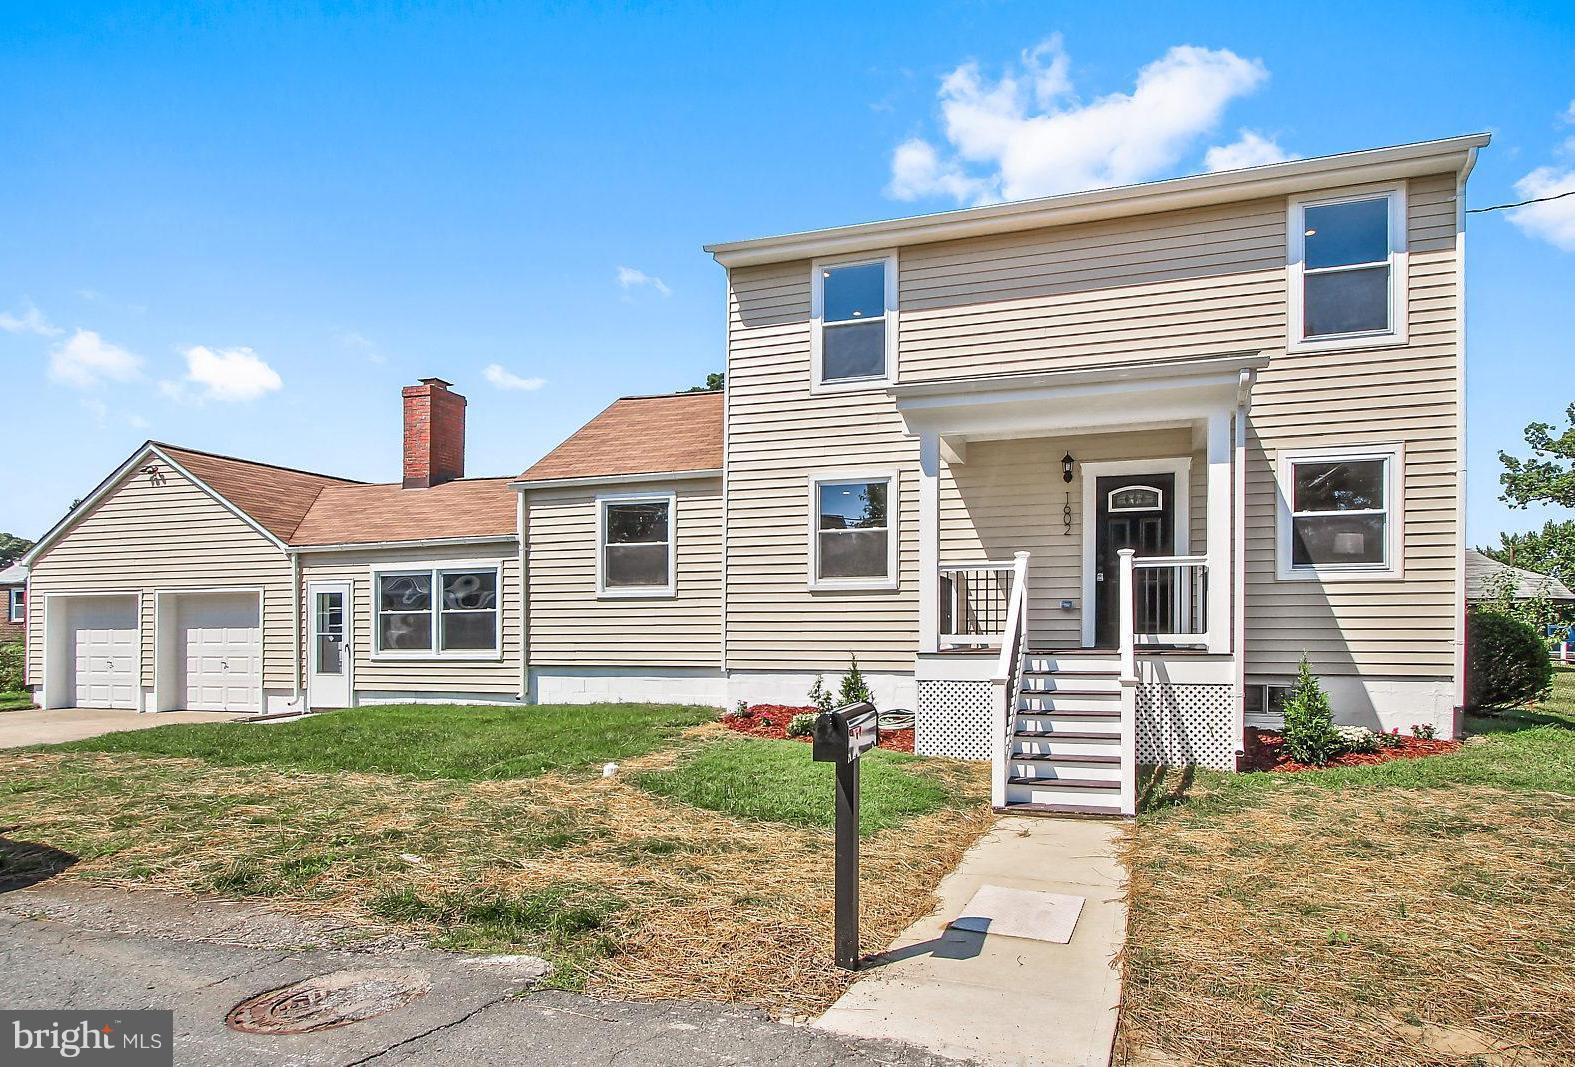 1602 EVERGREEN DRIVE, BALTIMORE, MD 21222